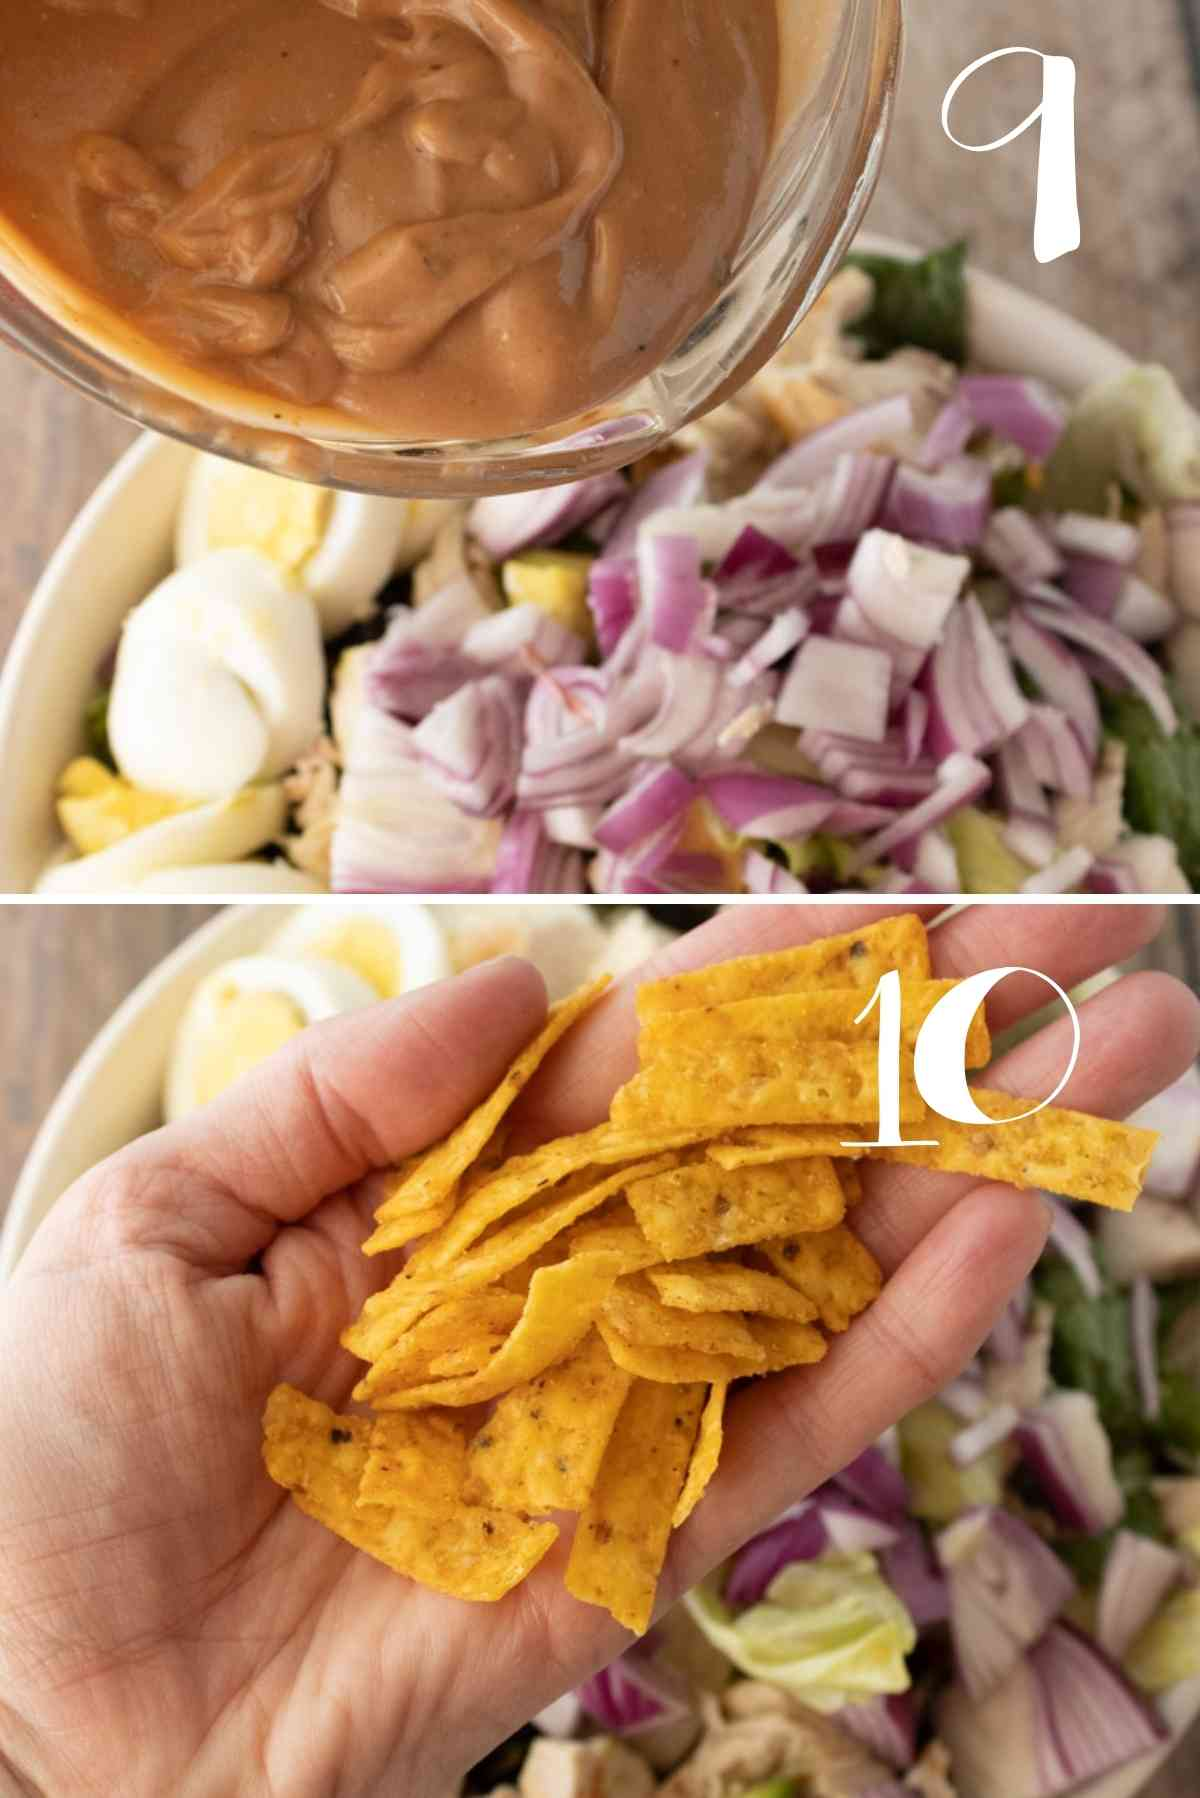 Add the barbecue ranch to the salad and top with crunchy tortilla strips.